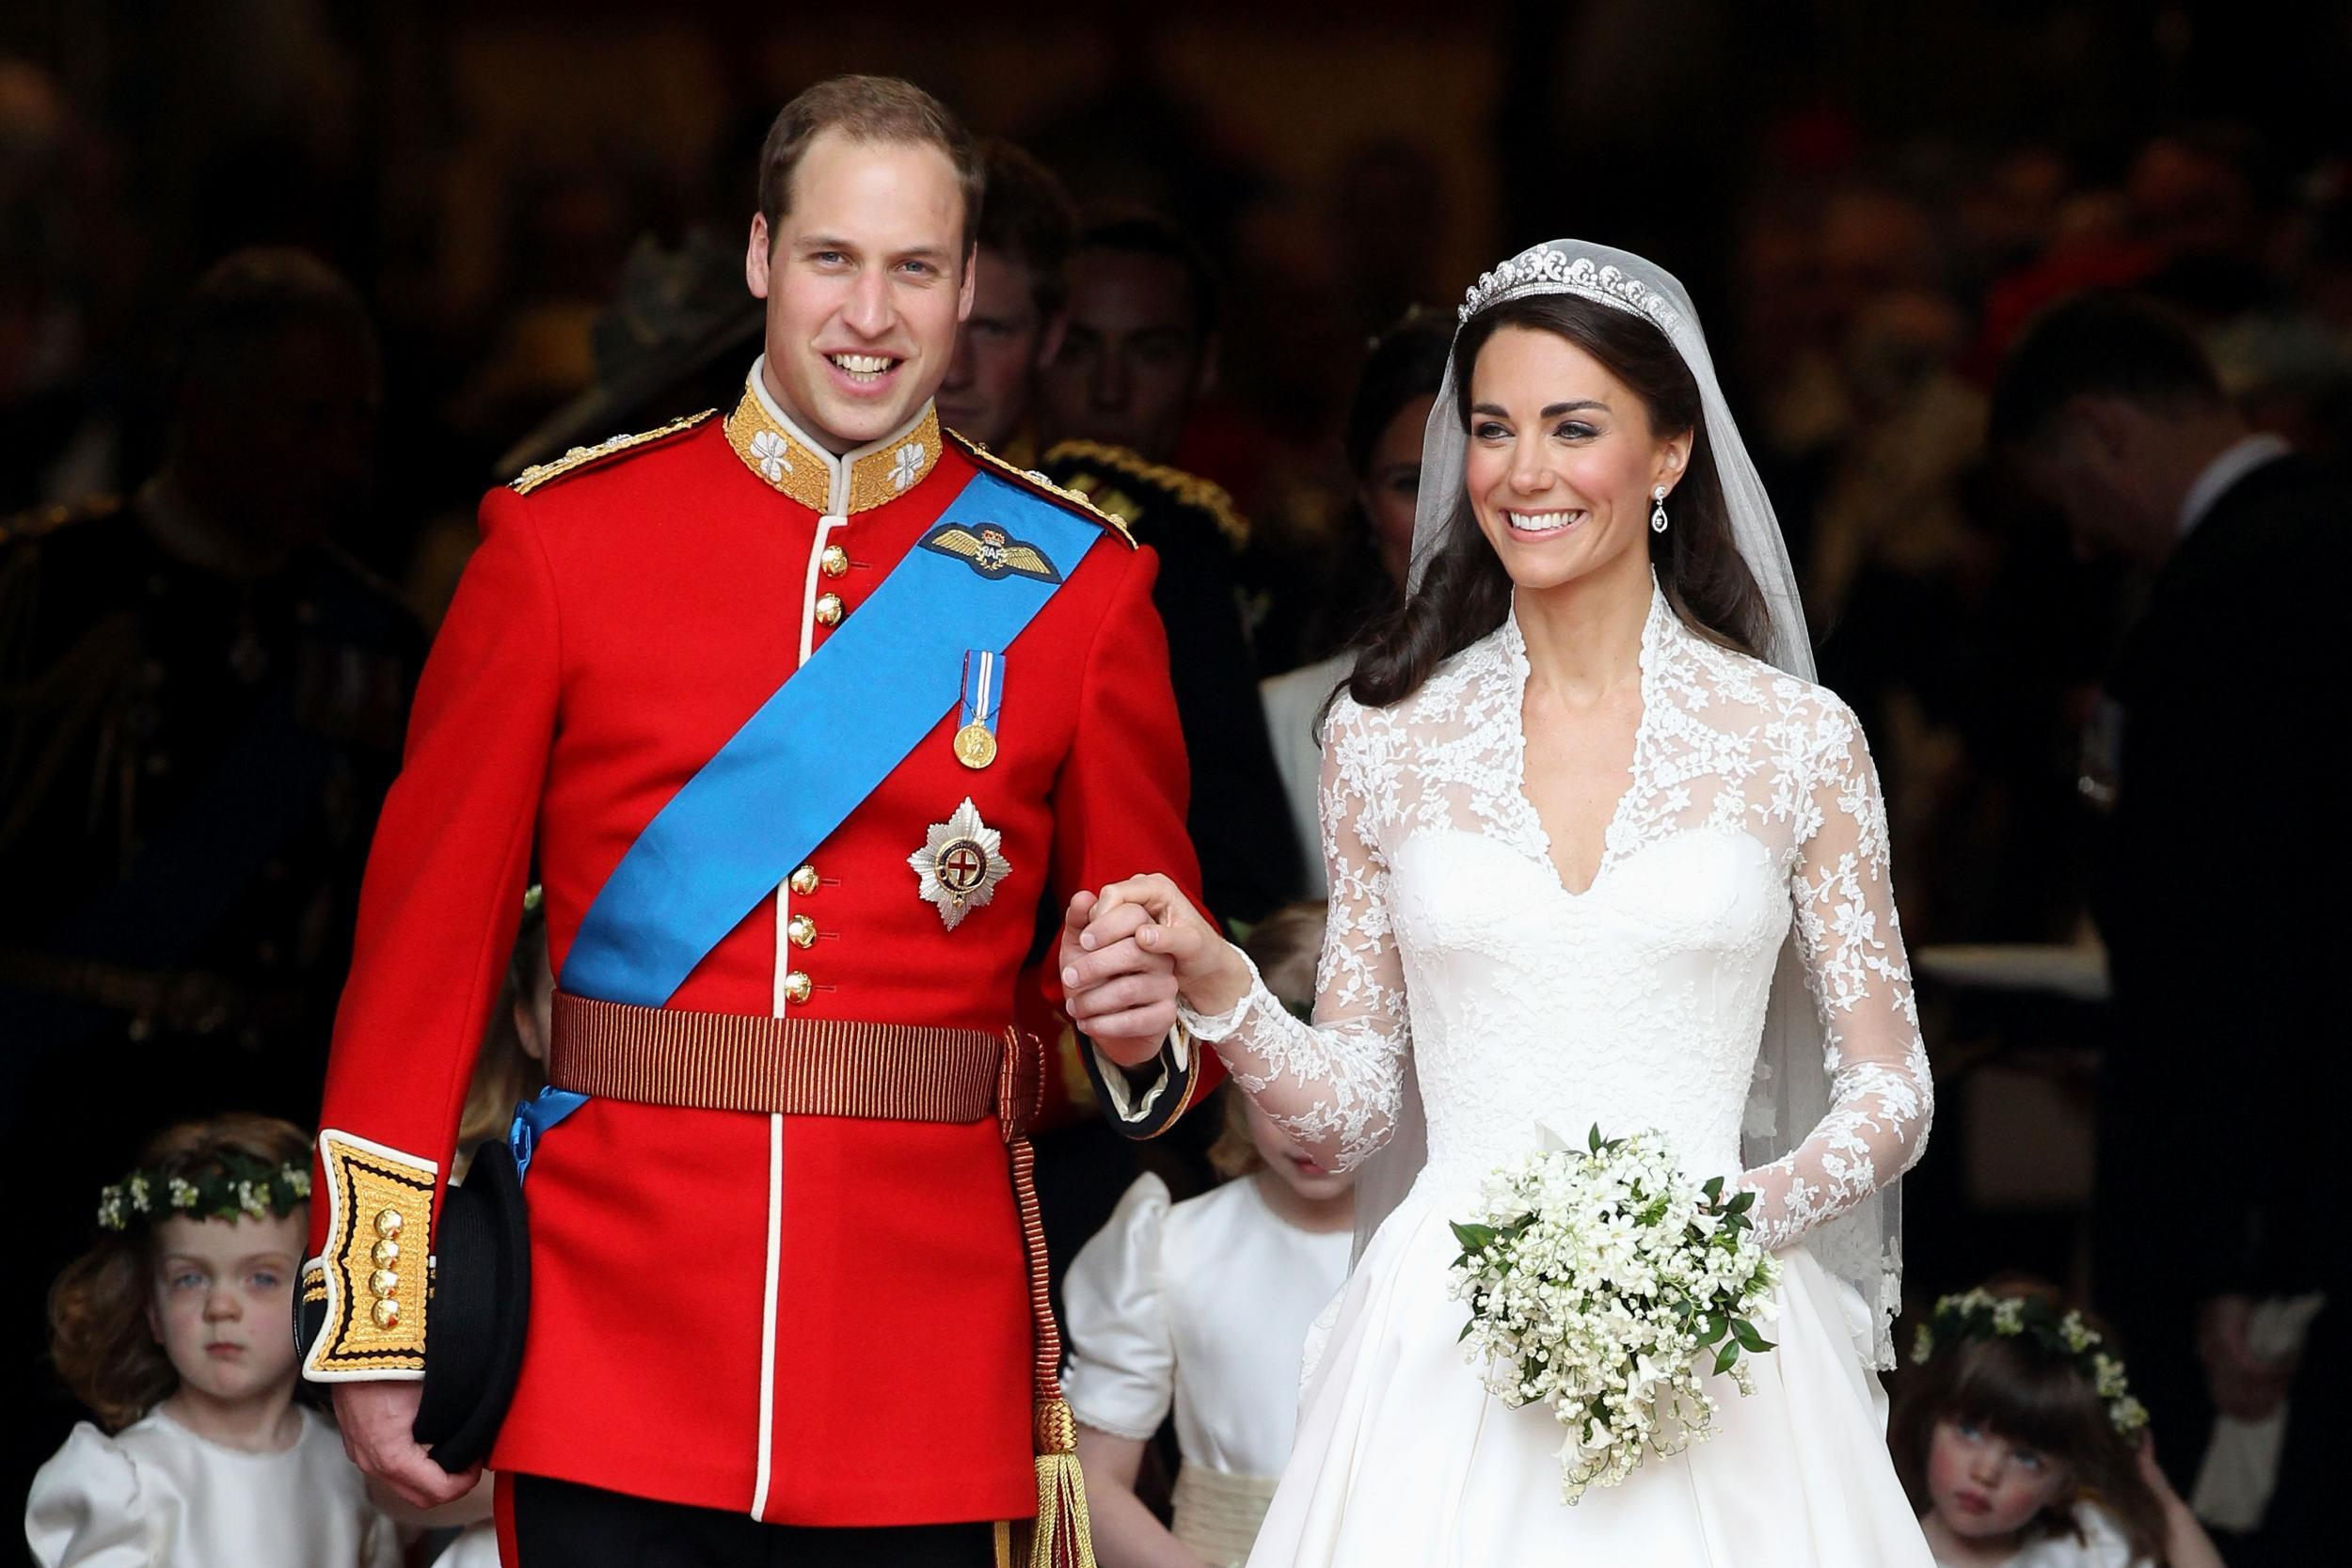 This Is What Kate Middletons Title Will Be When Prince William Becomes King